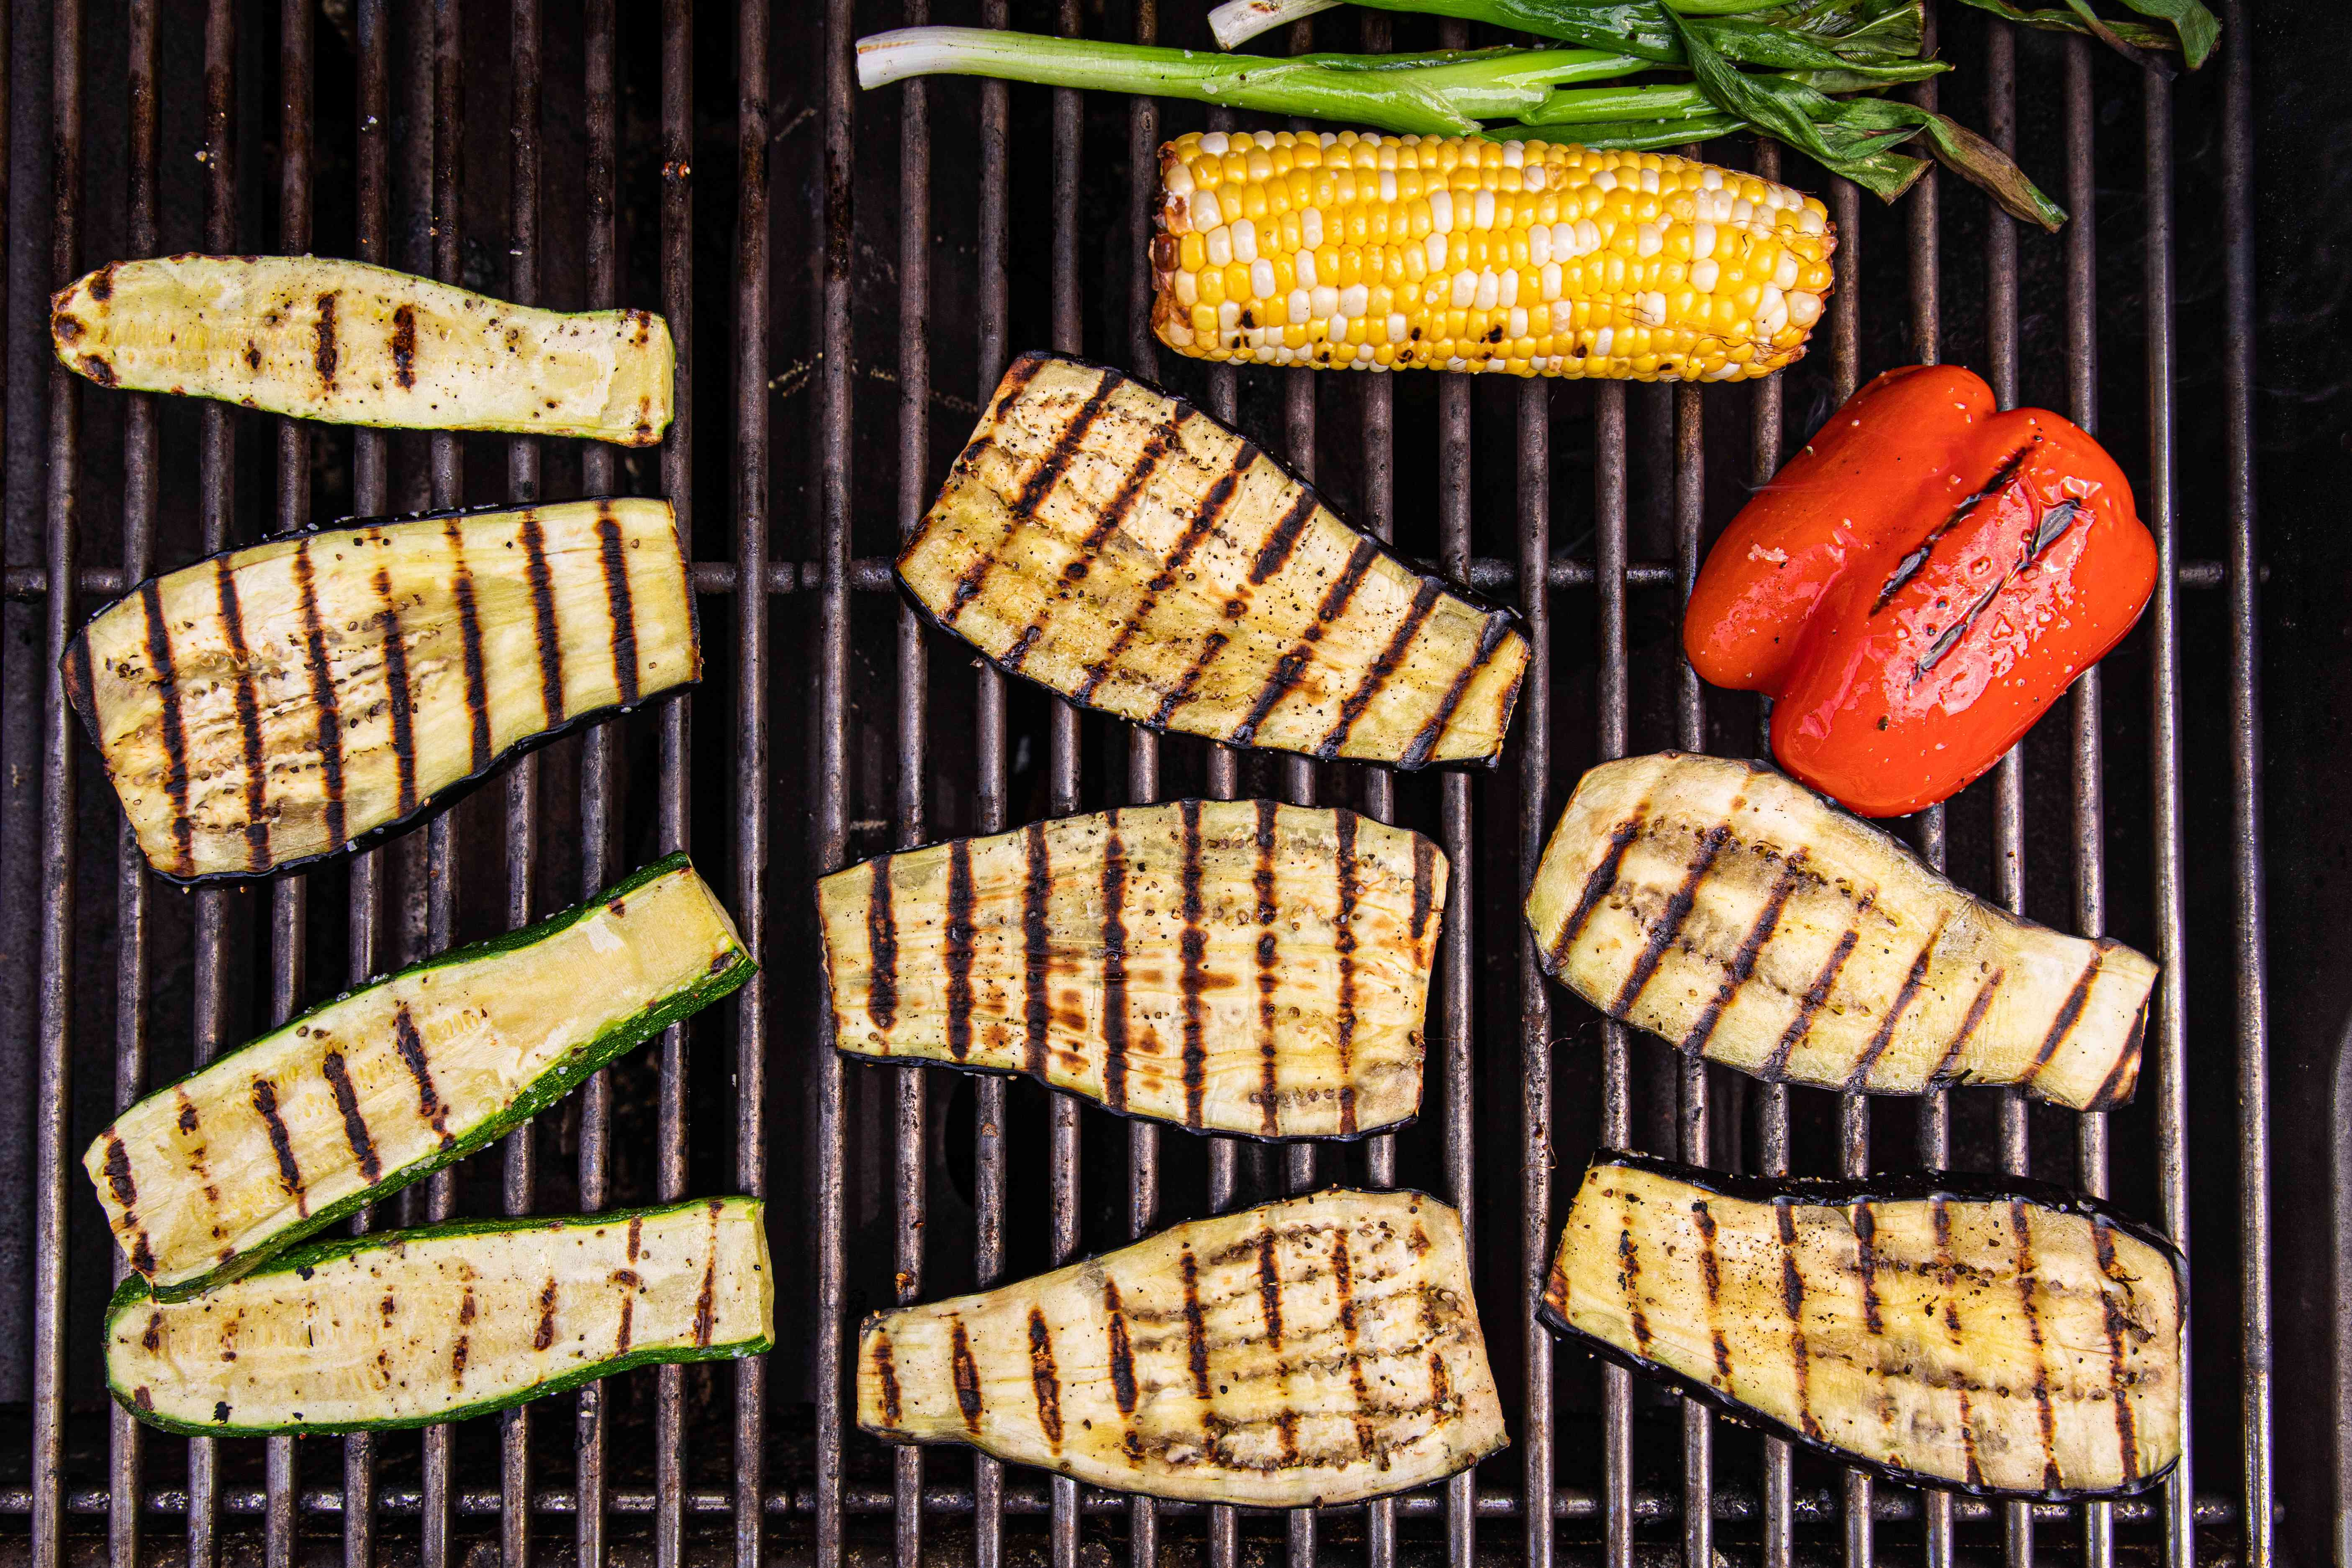 Grilling zucchini, peppers, and corn to make easy grilled vegetable nachos.